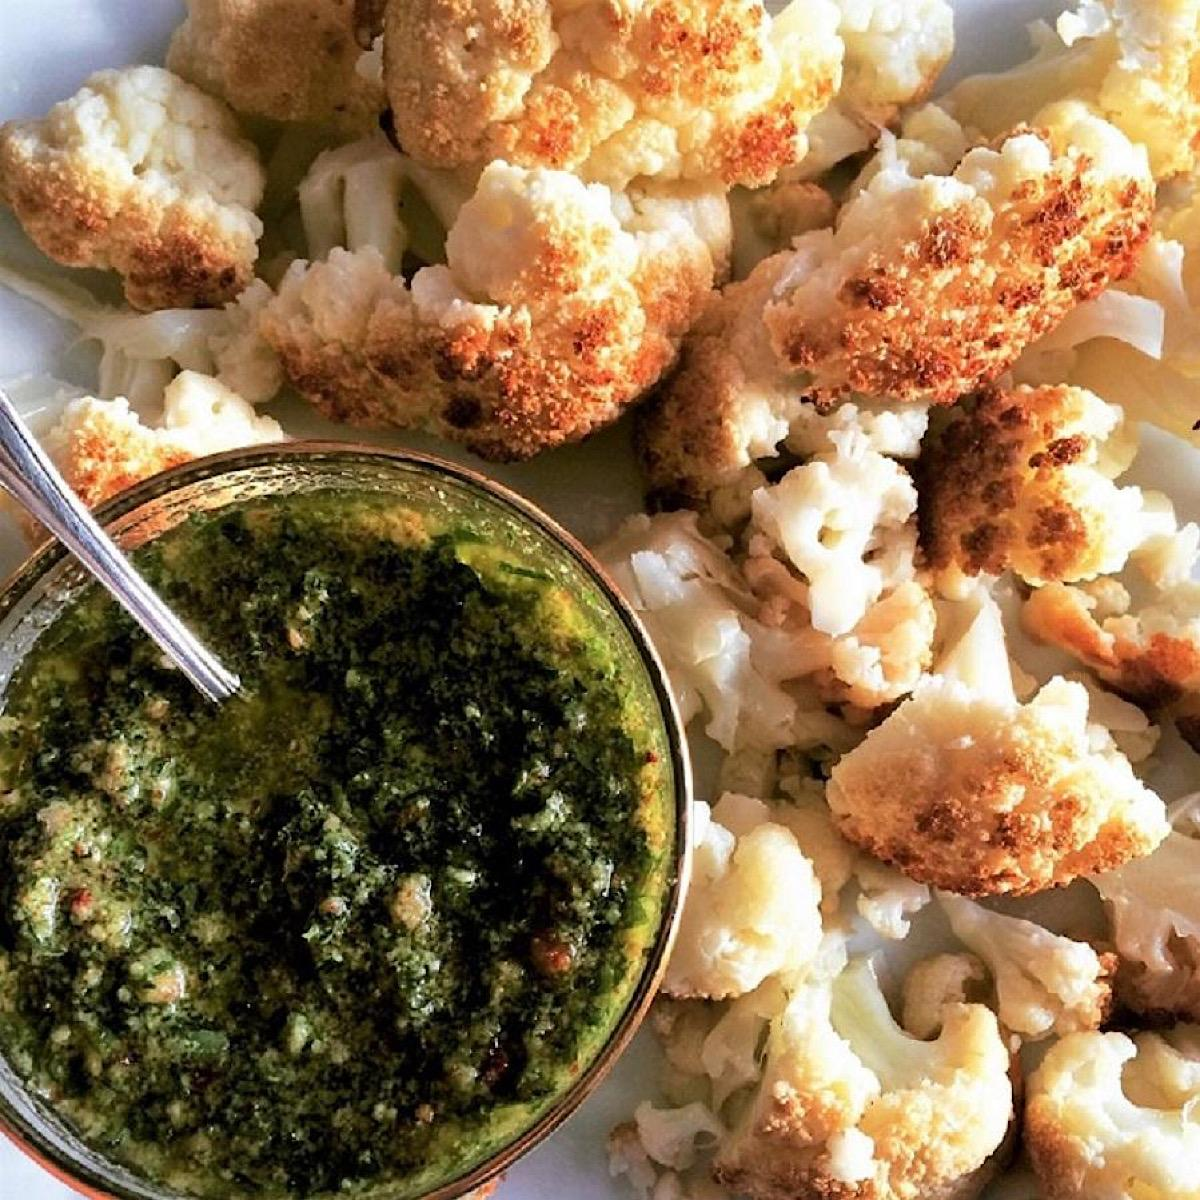 Chimichurri sauce with roasted cauliflower together on a dish